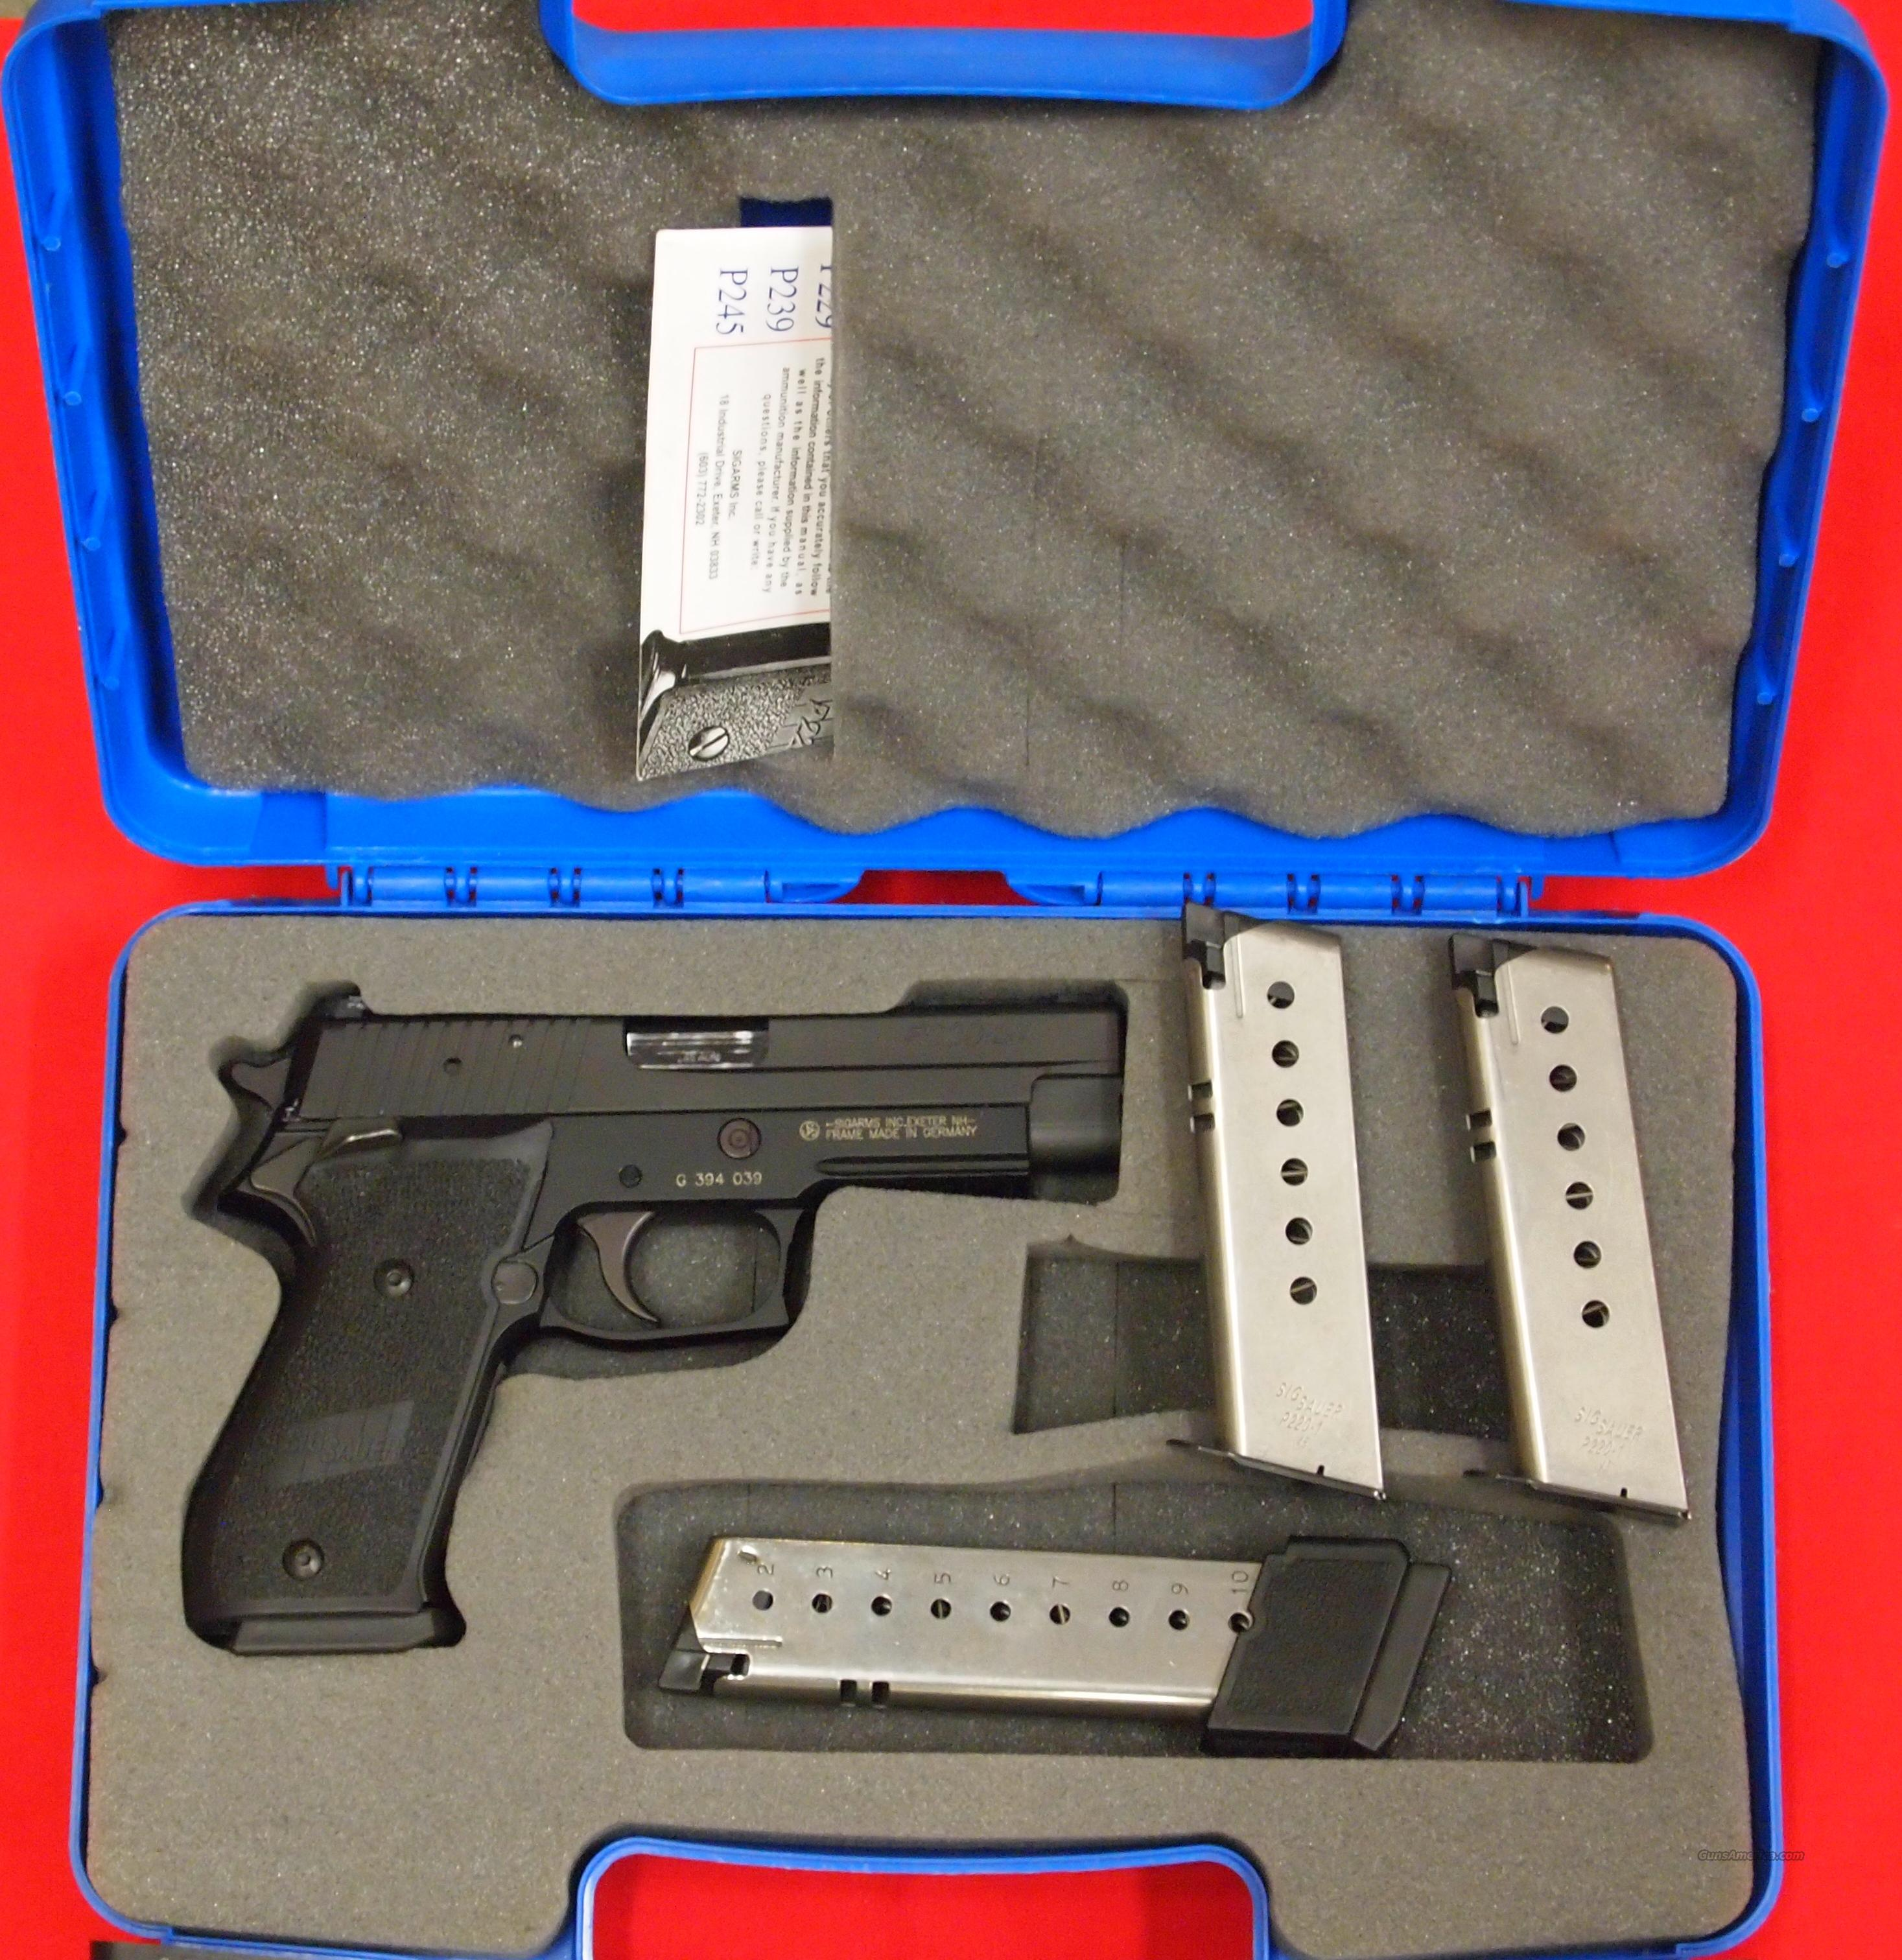 Ez Credit Auto Sales >> SIG SAUER P220R3-45-BSS-SAO for sale